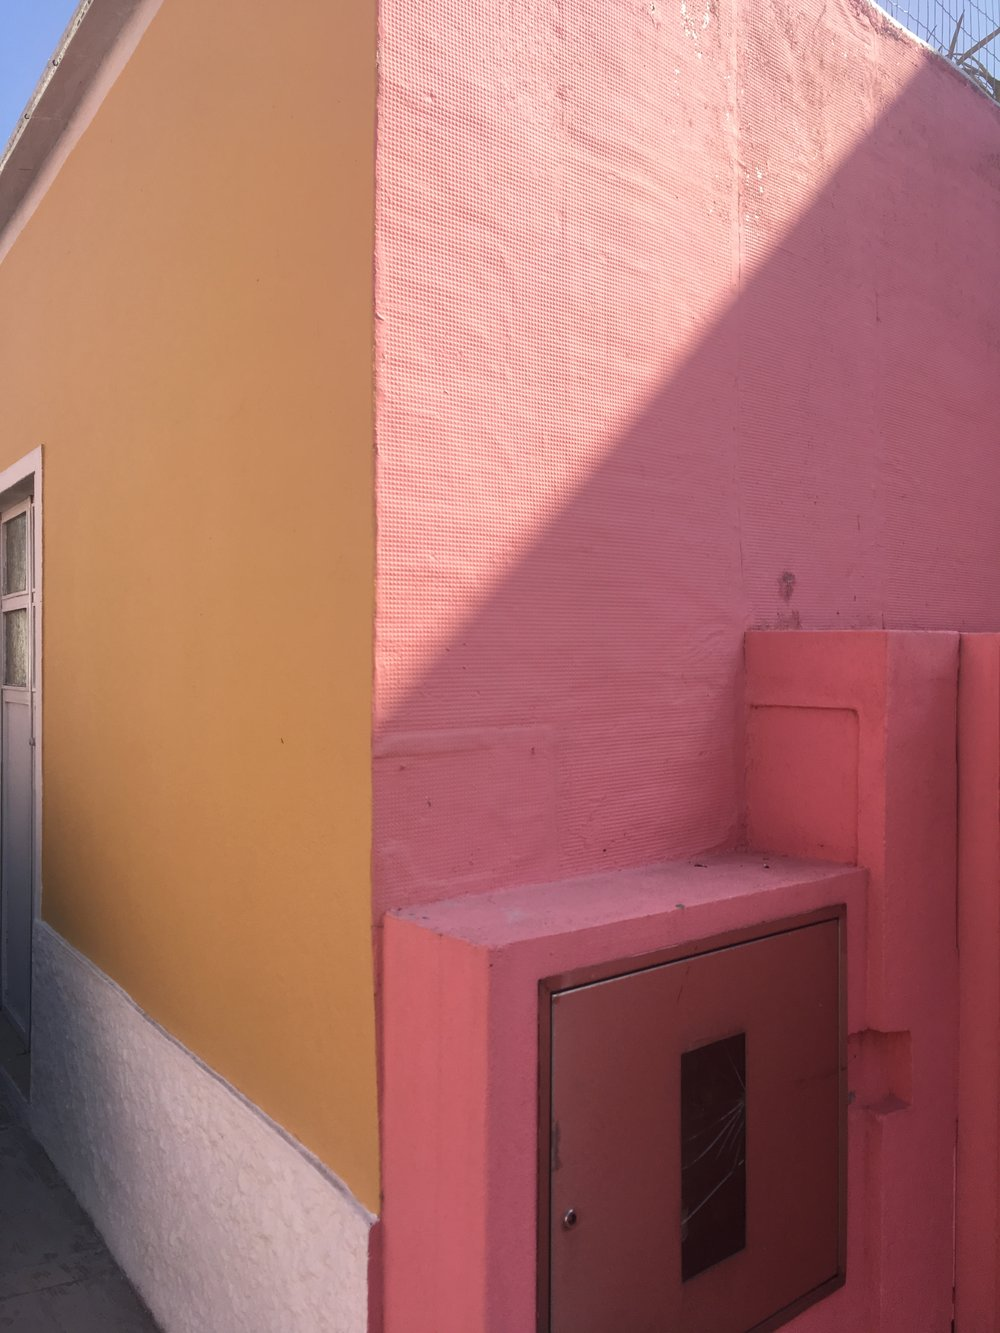 The colours of the houses and buildings in Portugal were amazing